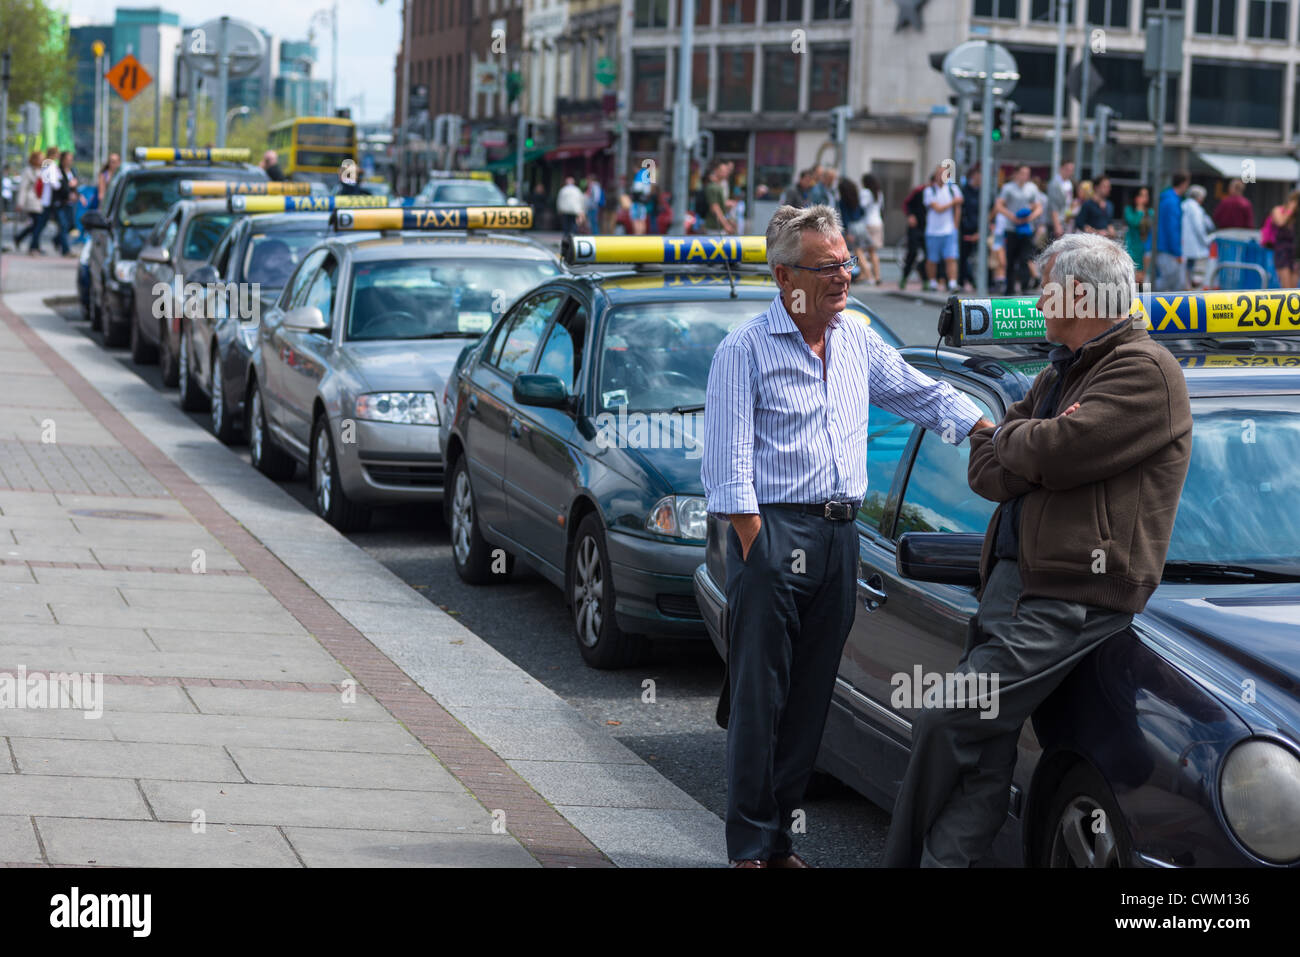 Cabbies at Dublin Taxi rank in City Centre, Republic of Ireland. Stock Photo